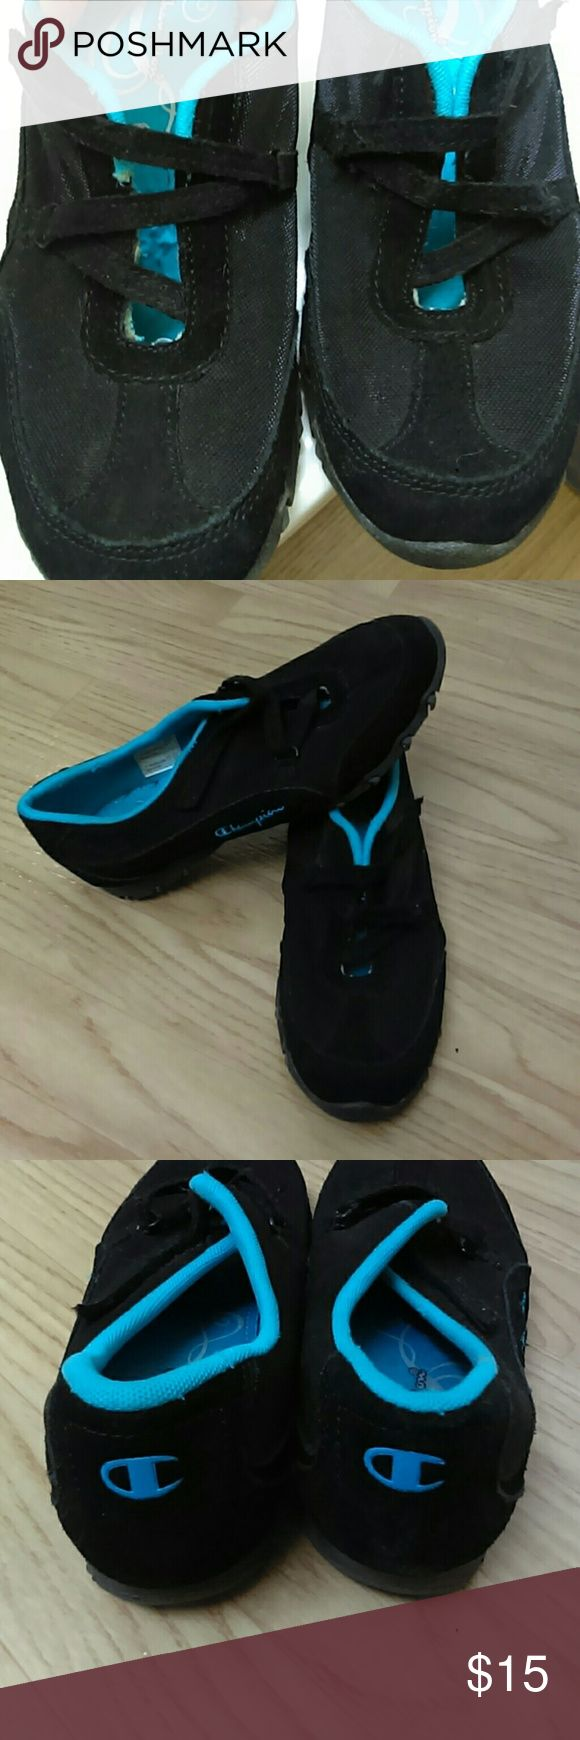 Champion slip on tennis shoes, size 7.5 Black with aqua blue lining.  Elastic laces.  Only worn a few times.  Great condition! Champion Shoes Sneakers